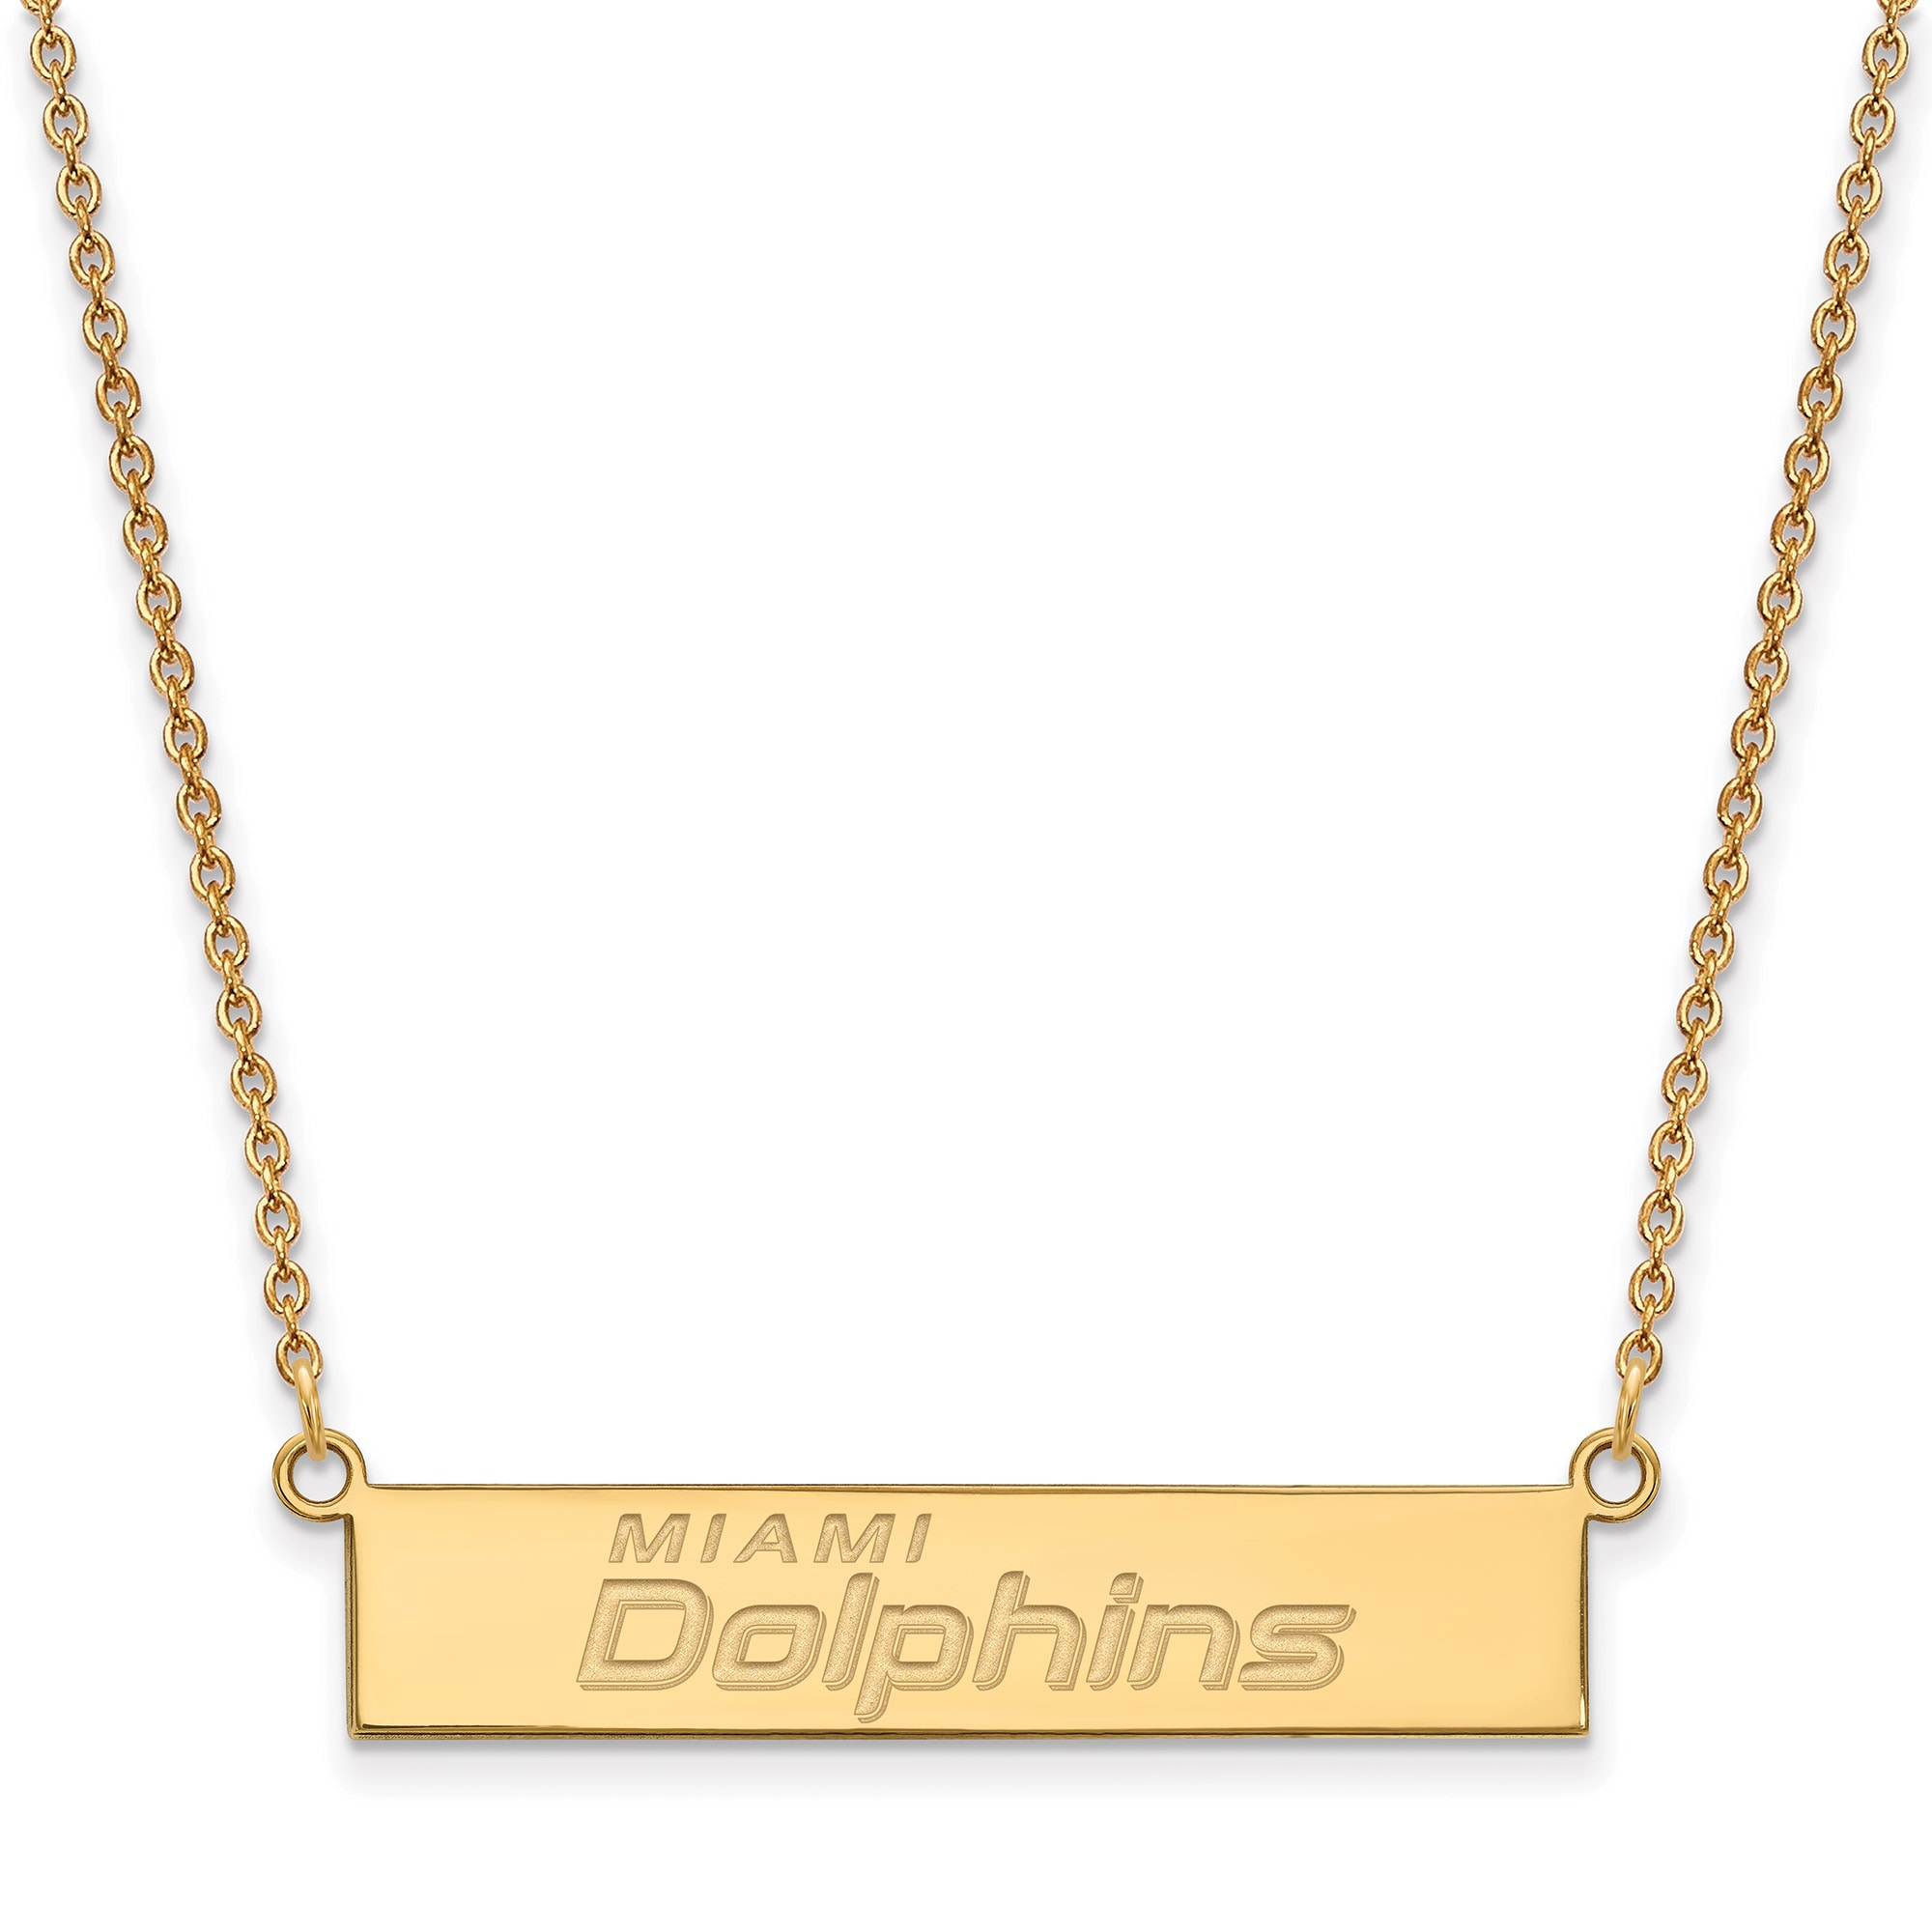 Miami Dolphins Gold-Plated Bar Necklace